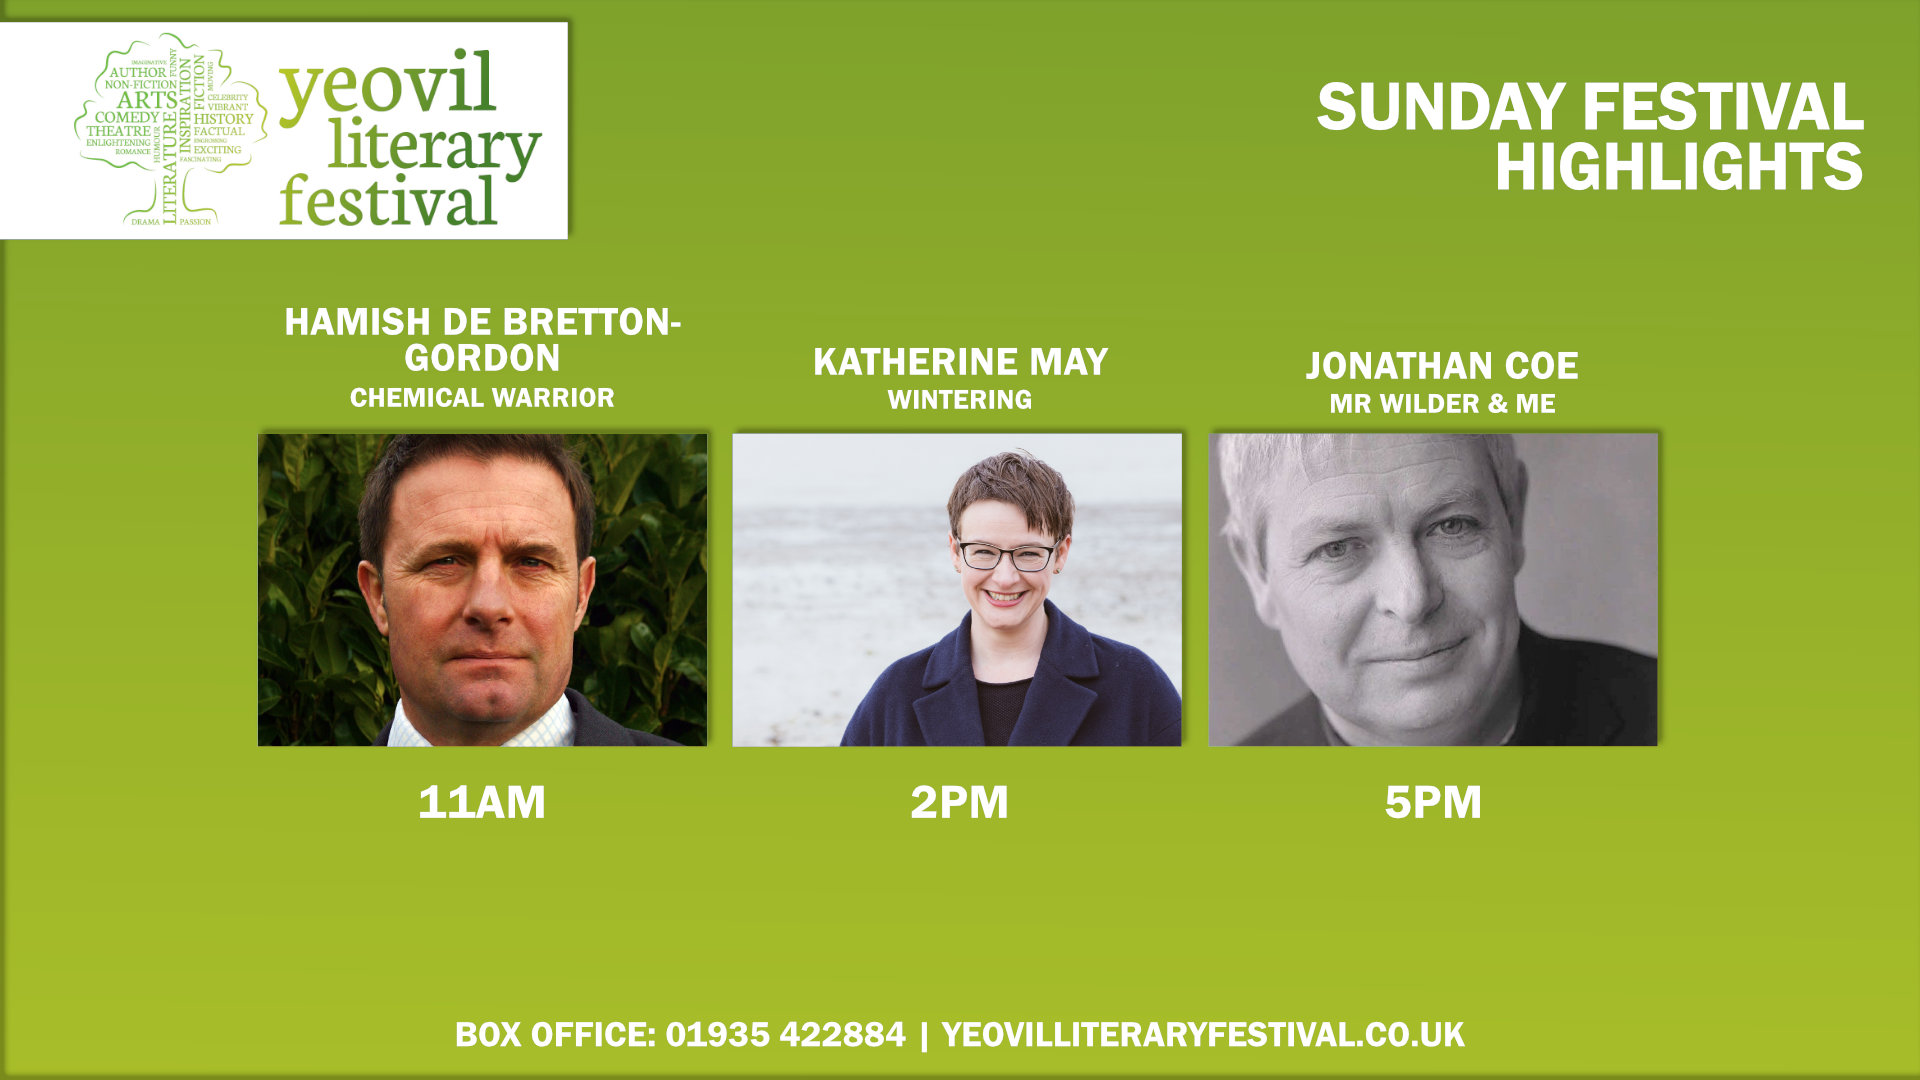 Yeovil Literary Festival - Sunday Festival Highlights